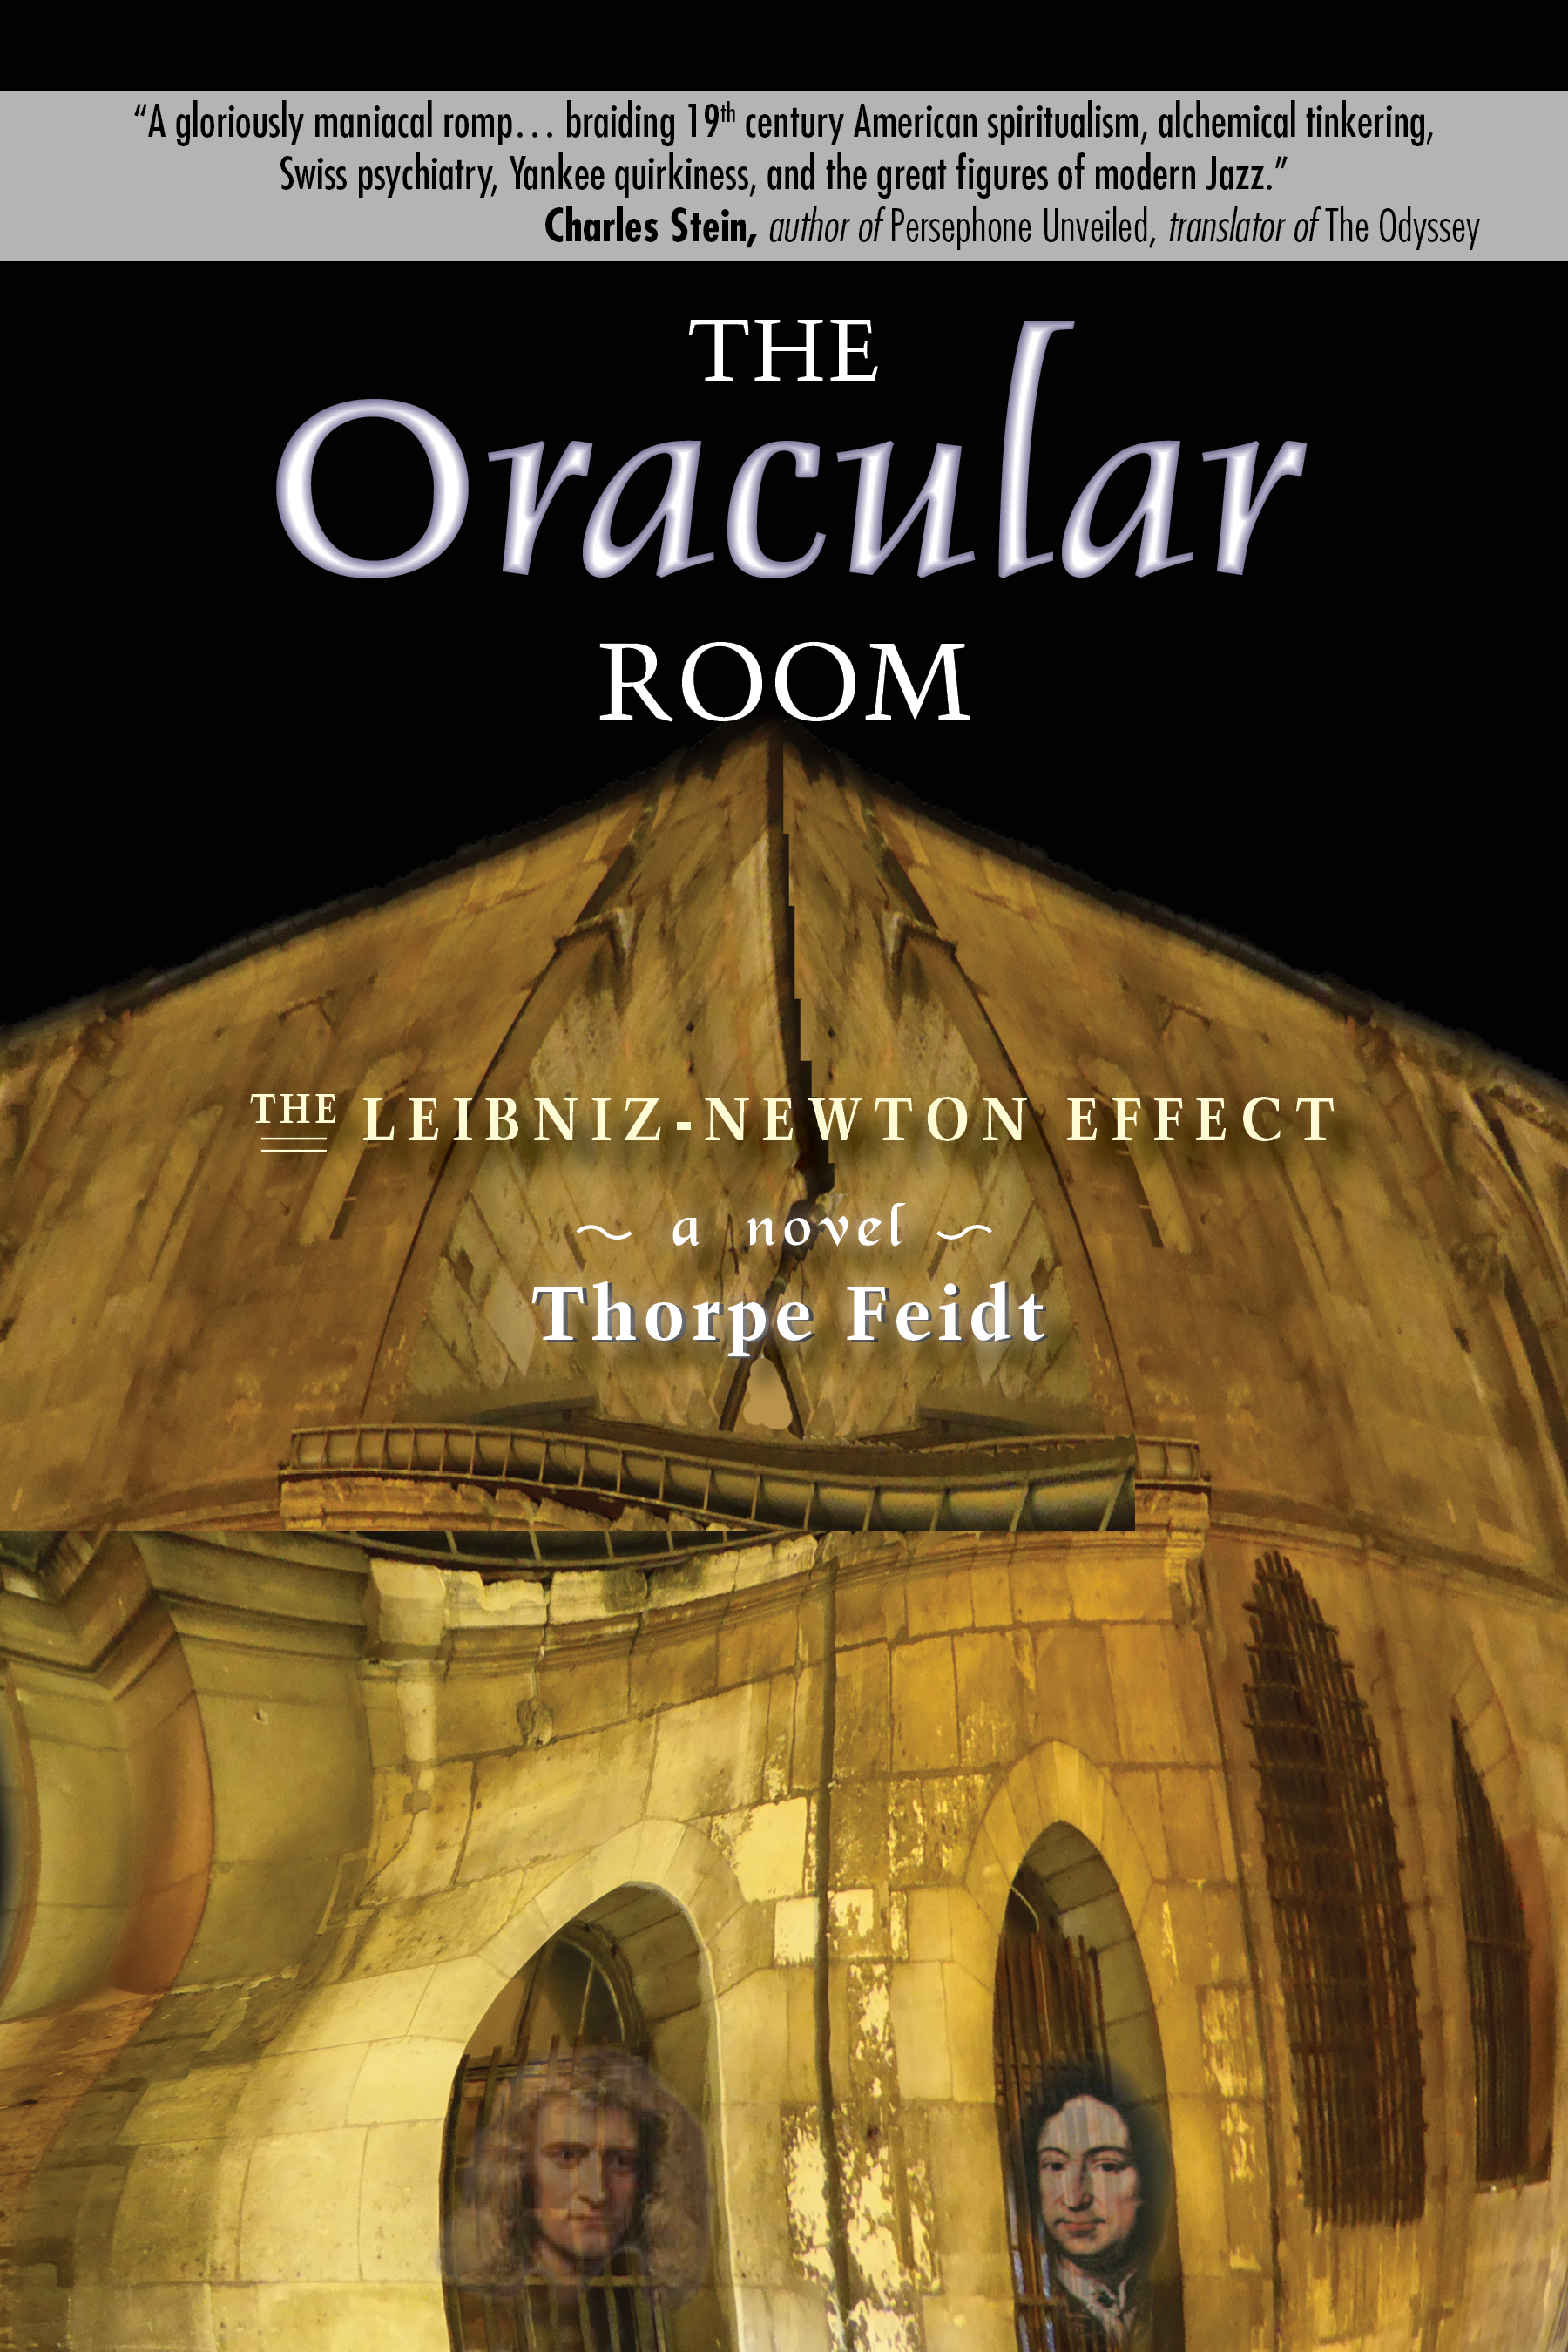 The Oracular Room